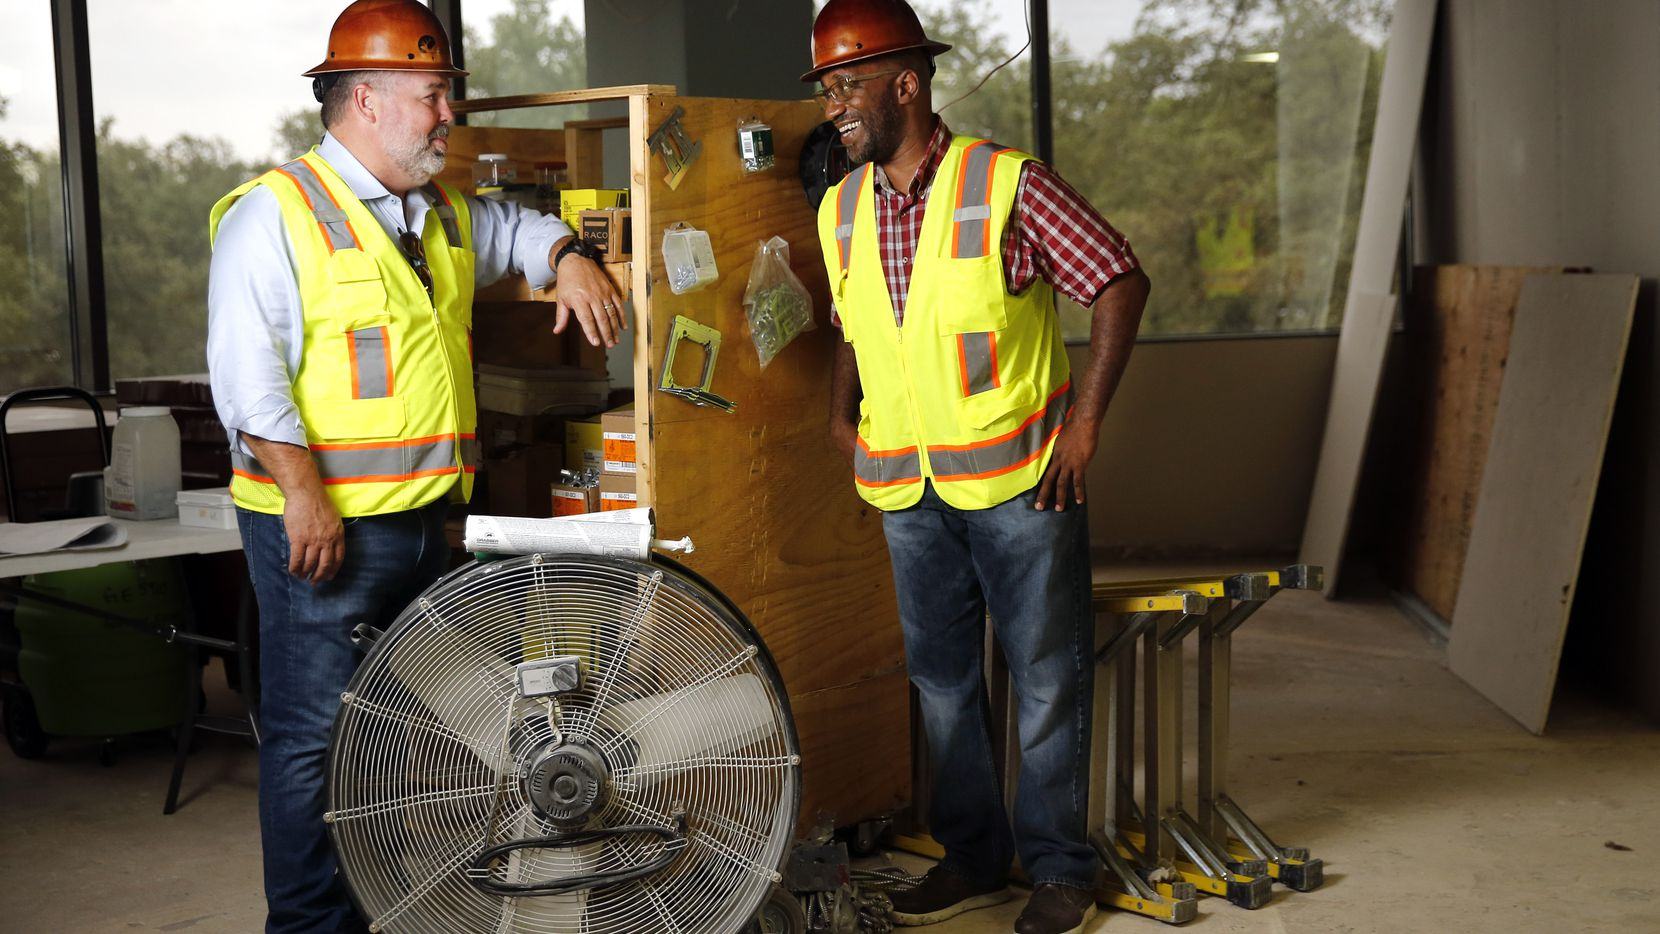 Gordon Highlander president Greg Gordon (left) makes a site visit with project manager Brian Thompson to a commercial office finish-out in Dallas on Sept. 9. Gordon posted a video discussion about Black Lives Matter with Thompson.